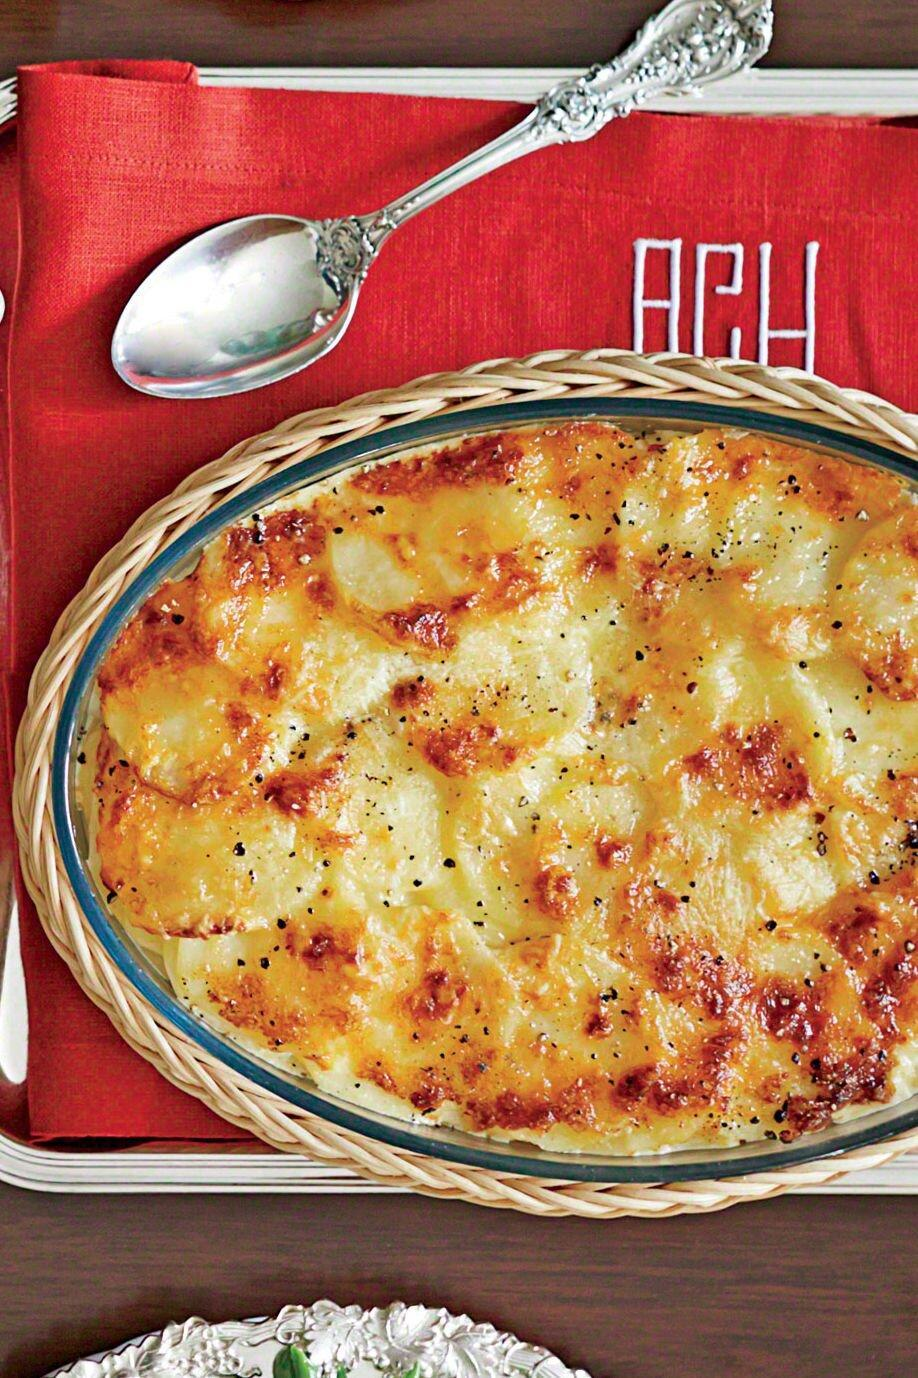 """<p><strong>Recipe:</strong> <strong><a href=""""https://www.southernliving.com/syndication/potatoes-patio"""" rel=""""nofollow noopener"""" target=""""_blank"""" data-ylk=""""slk:Potatoes Patio"""" class=""""link rapid-noclick-resp"""">Potatoes Patio</a></strong></p> <p>A mixture of Gruyère and Parmesan cheese makes this luxurious baked dish all the more delicious.</p>"""